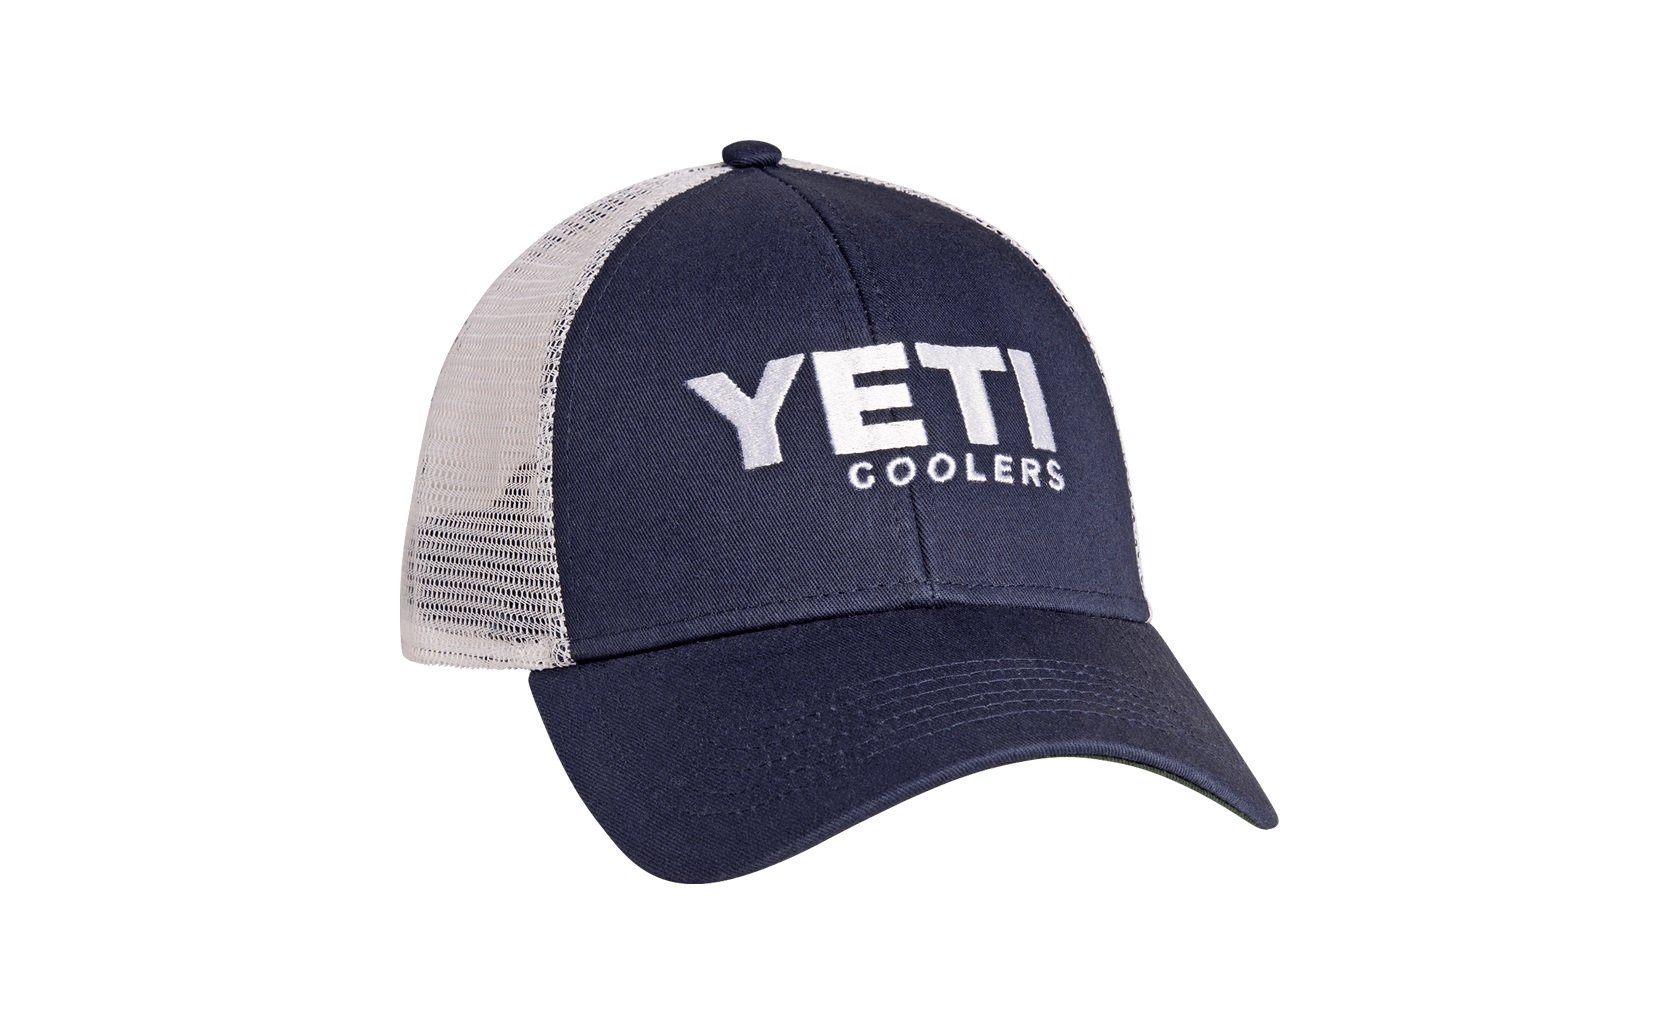 YETI 21010060001 Navy Trucker Hat Cooler, Multicolor